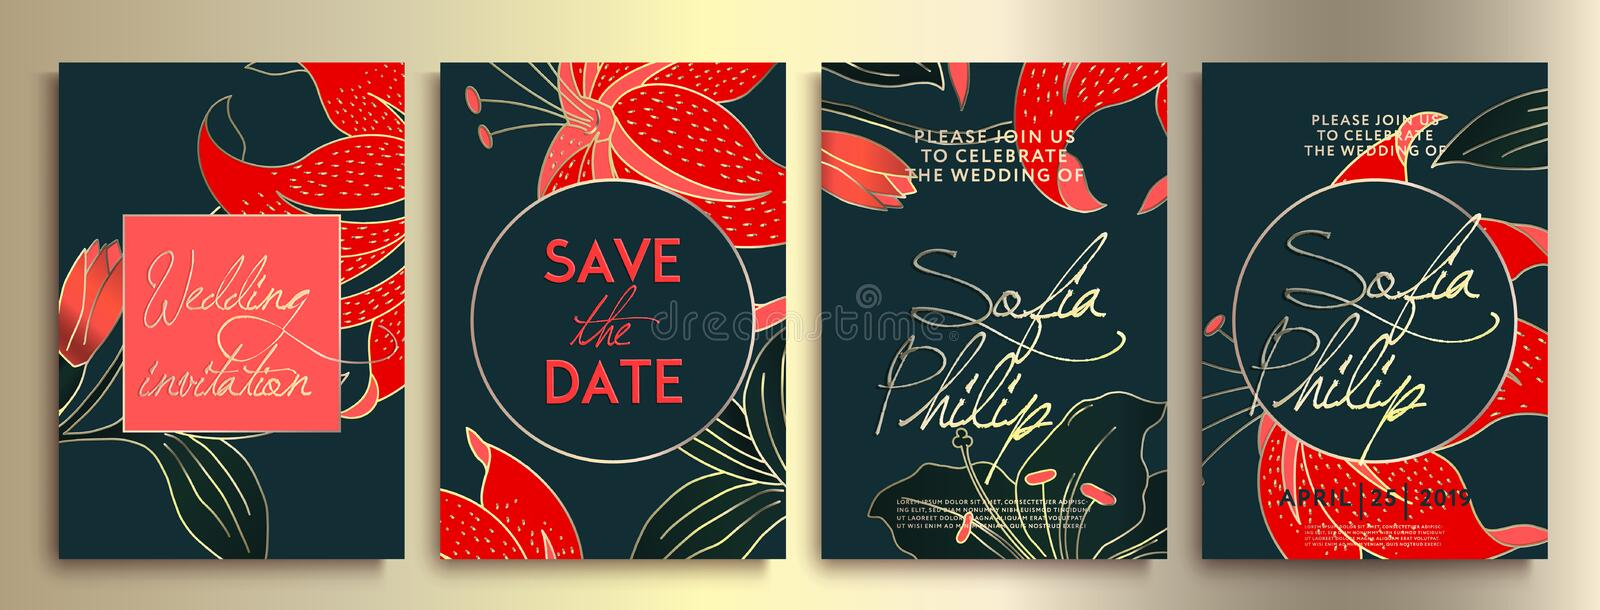 Wedding invitation with flowers and leaves on dark texture. luxury card on blue backgrounds, artistic covers design, colorful. Wedding invitation with flowers vector illustration